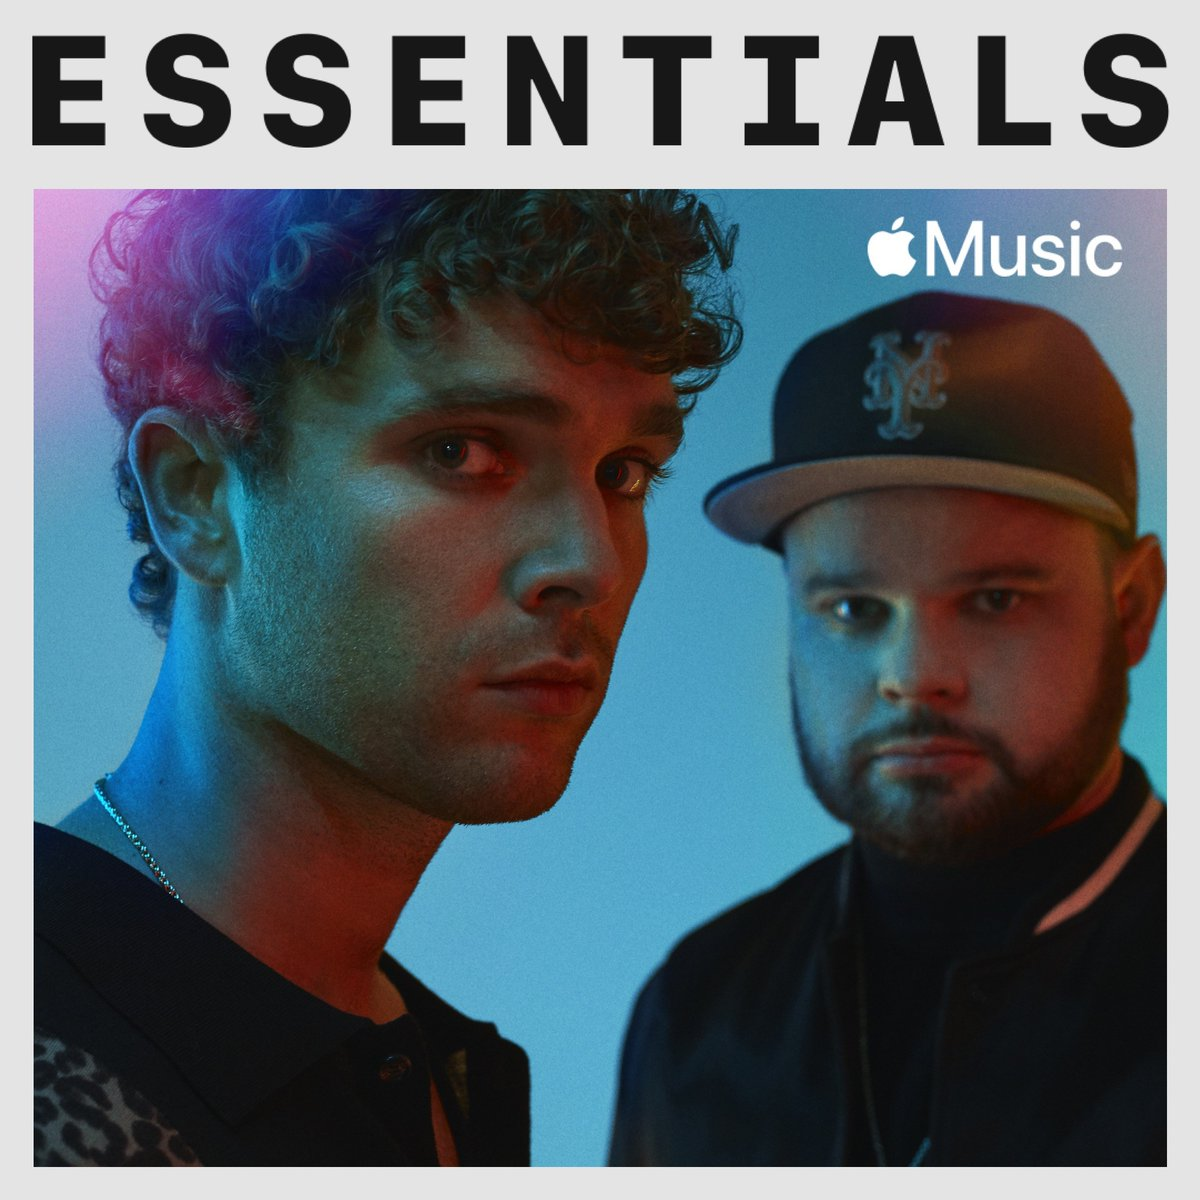 Listen to Troubles Coming in our Essentials playlist, thanks @AppleMusic for the love! 👊 royalblood.me/apple-essentia…